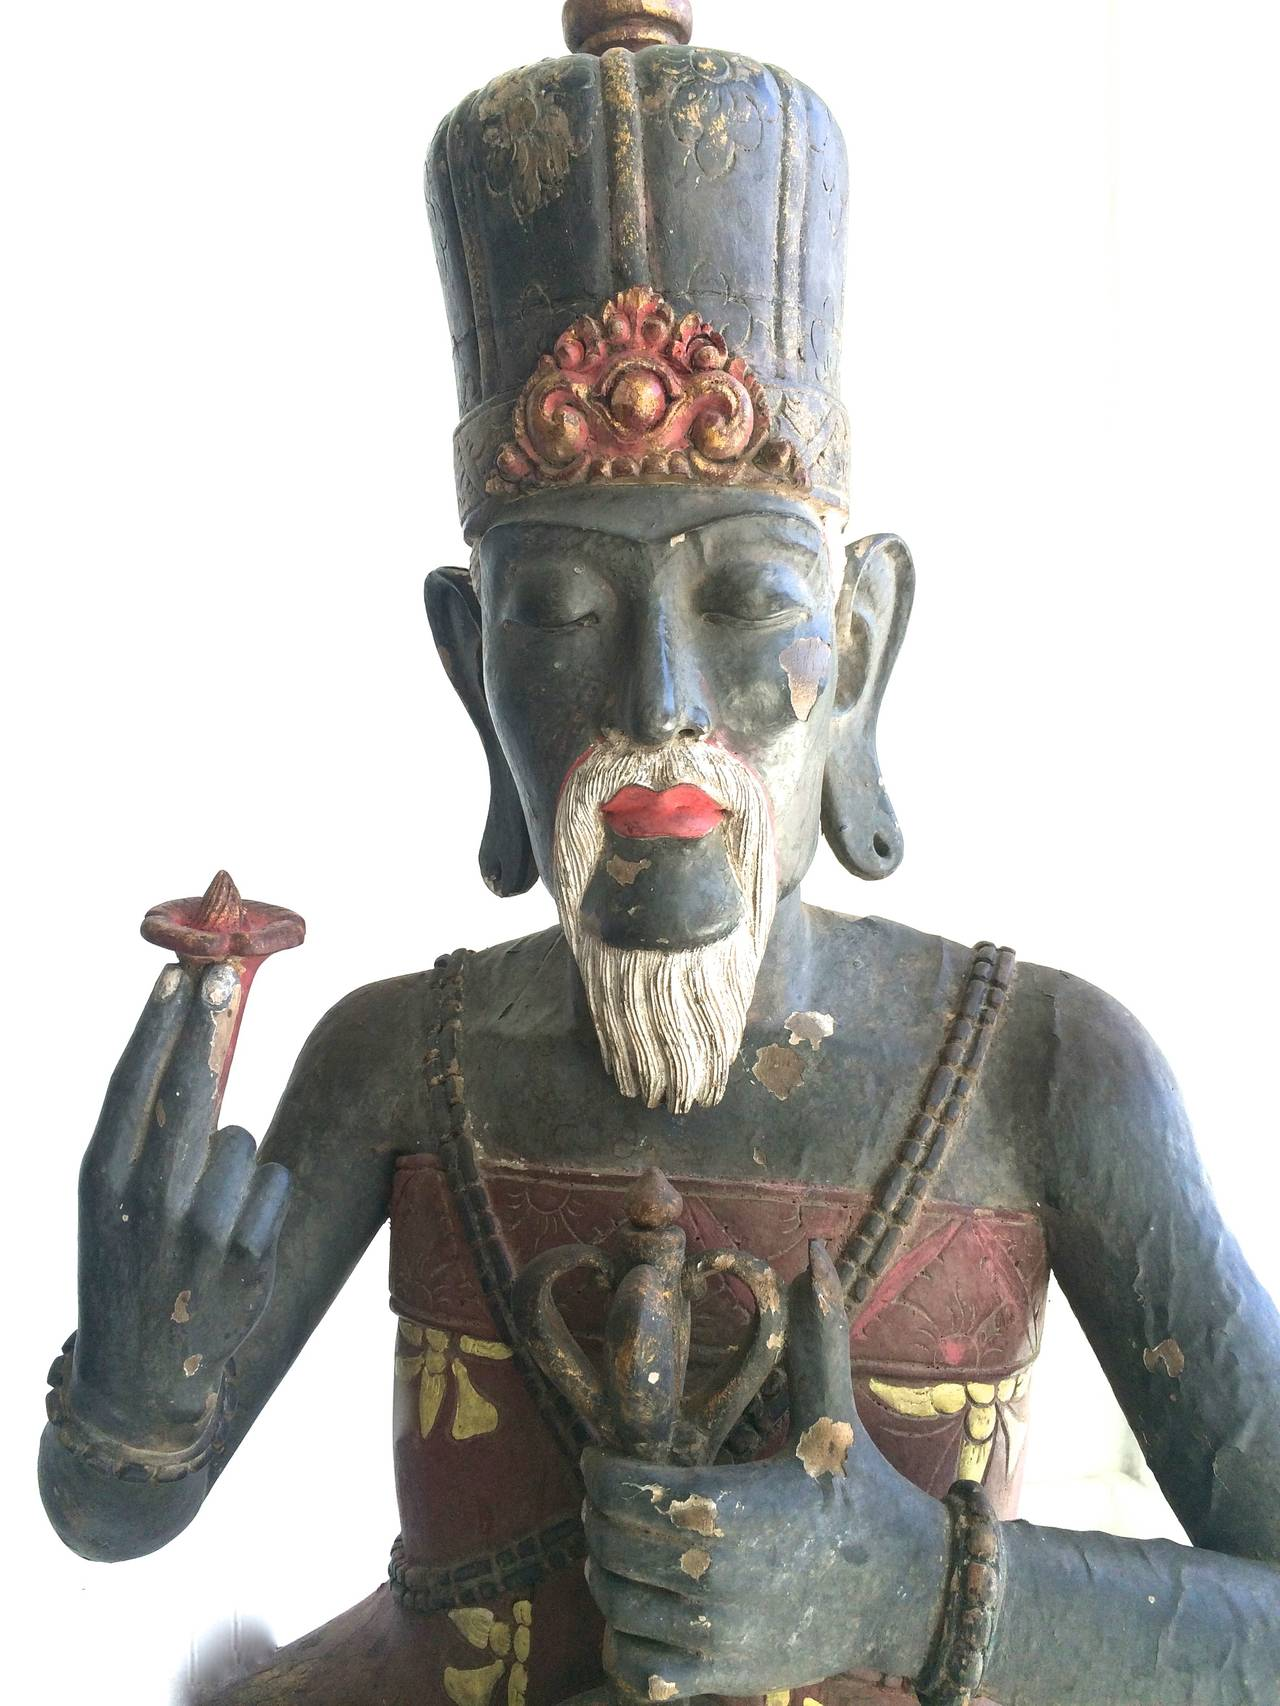 Antique High Priest Sitting on Lotus Wood Sculpture Bali - Gray Figurative Sculpture by Unknown